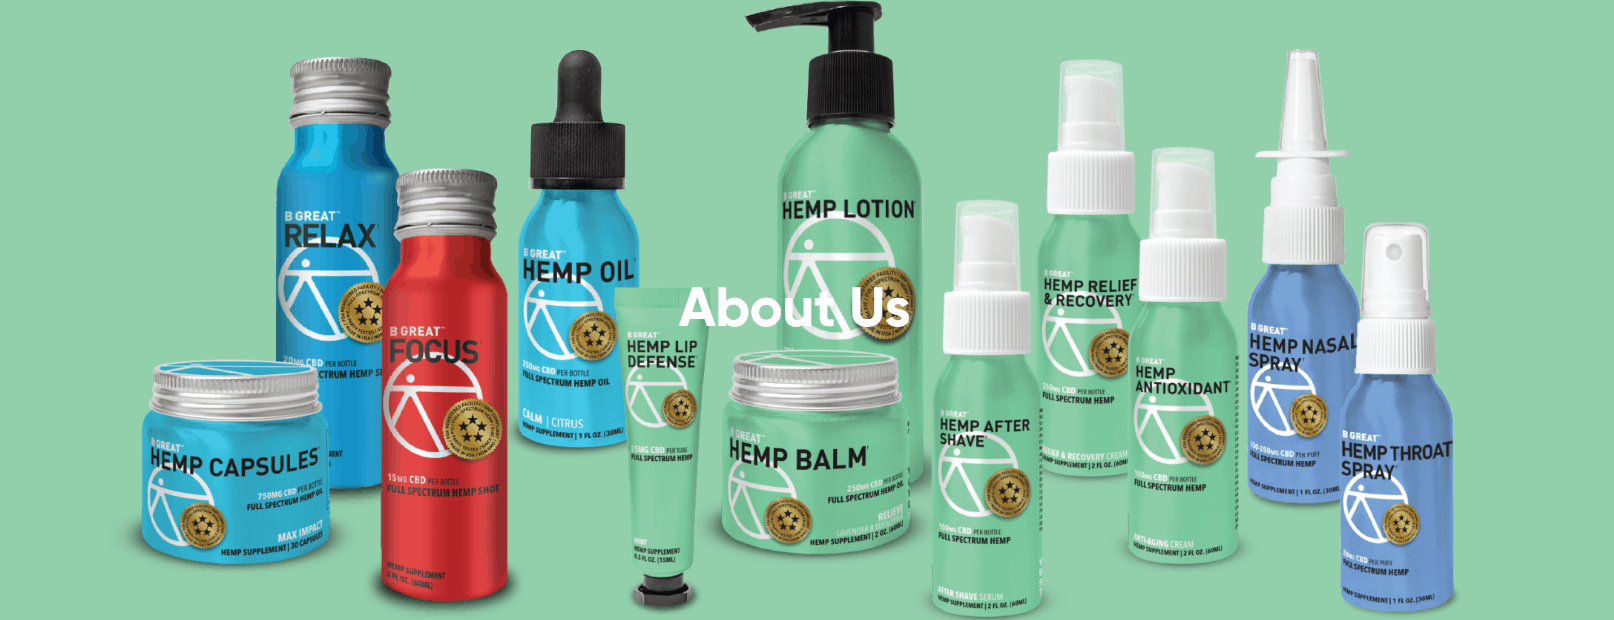 B Great CBD Coupons About Us